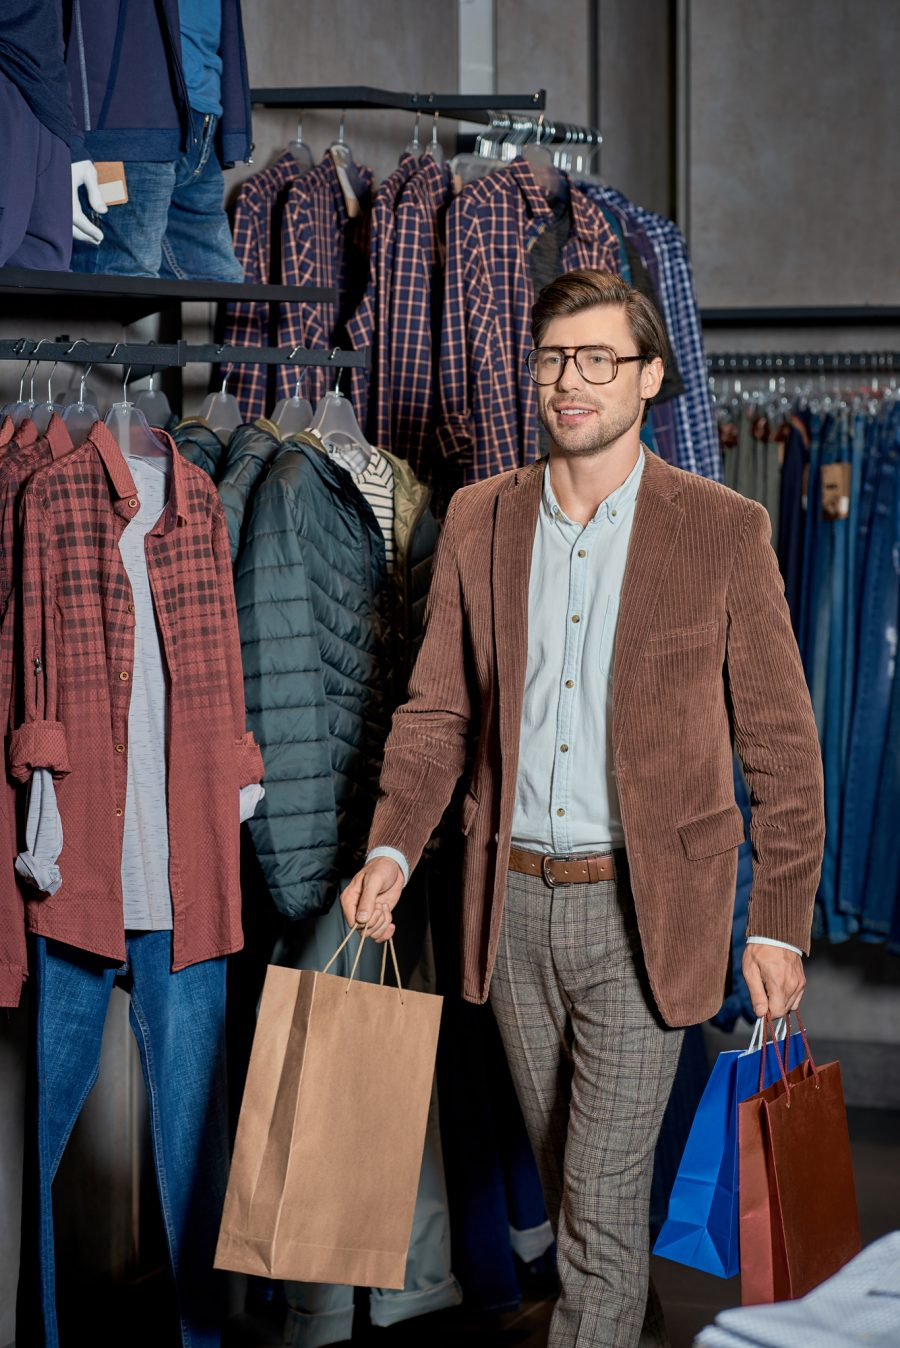 Man Shopping with Bags